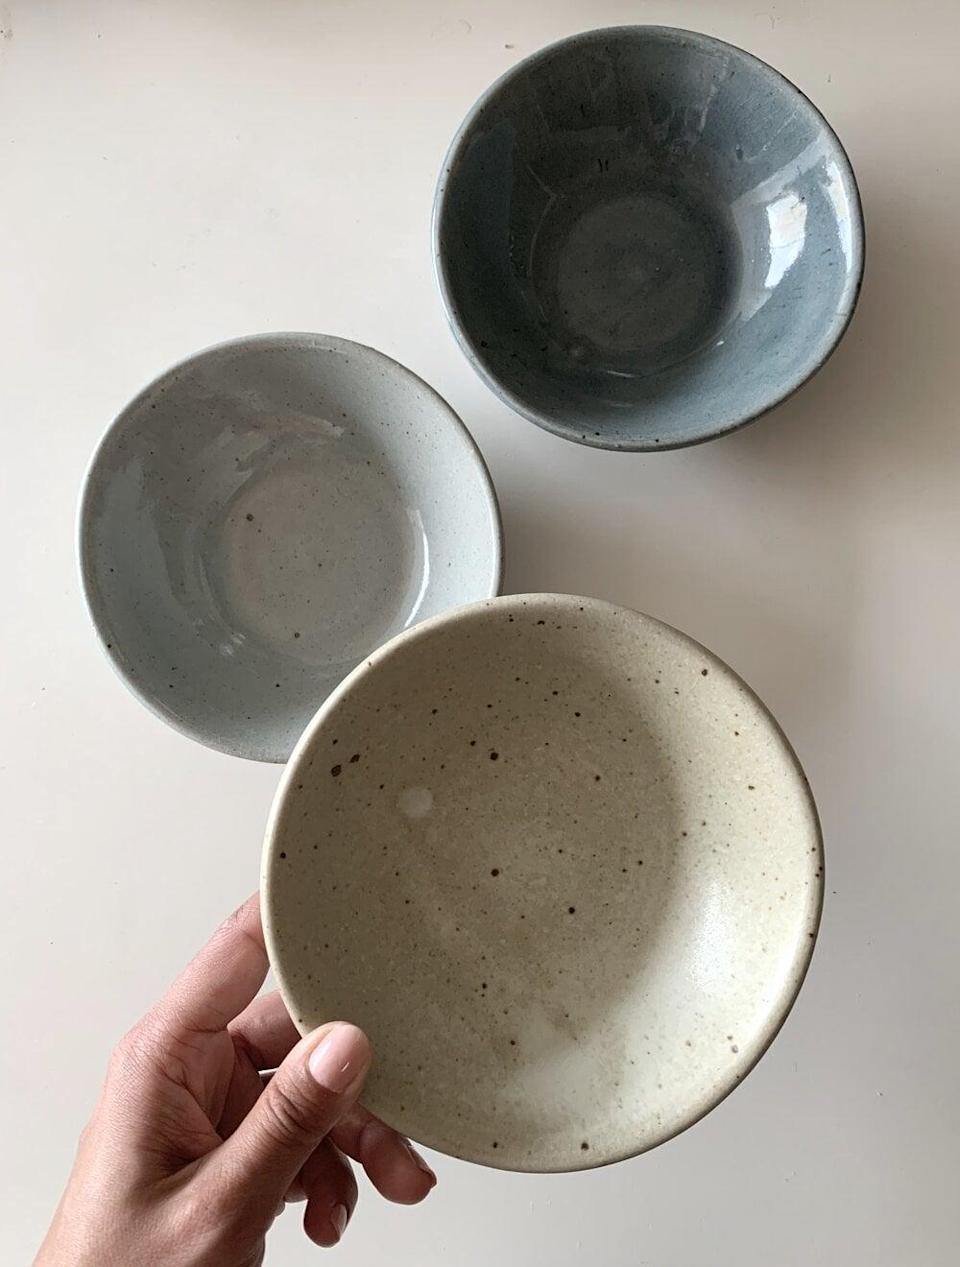 """<p>Upgrade your kitchen with a few of these <a href=""""https://www.popsugar.com/buy/Home-Obidos-Mini-Bowls-584965?p_name=Home%20by%20BE.%20Obidos%20Mini%20Bowls&retailer=homebybe.com&pid=584965&price=40&evar1=casa%3Aus&evar9=45784601&evar98=https%3A%2F%2Fwww.popsugar.com%2Fhome%2Fphoto-gallery%2F45784601%2Fimage%2F47575729%2FHome-by-BE-Obidos-Mini-Bowl&list1=shopping%2Cproducts%20under%20%2450%2Cdecor%20inspiration%2Caffordable%20shopping%2Chome%20shopping&prop13=api&pdata=1"""" class=""""link rapid-noclick-resp"""" rel=""""nofollow noopener"""" target=""""_blank"""" data-ylk=""""slk:Home by BE. Obidos Mini Bowls"""">Home by BE. Obidos Mini Bowls</a> ($40).</p>"""